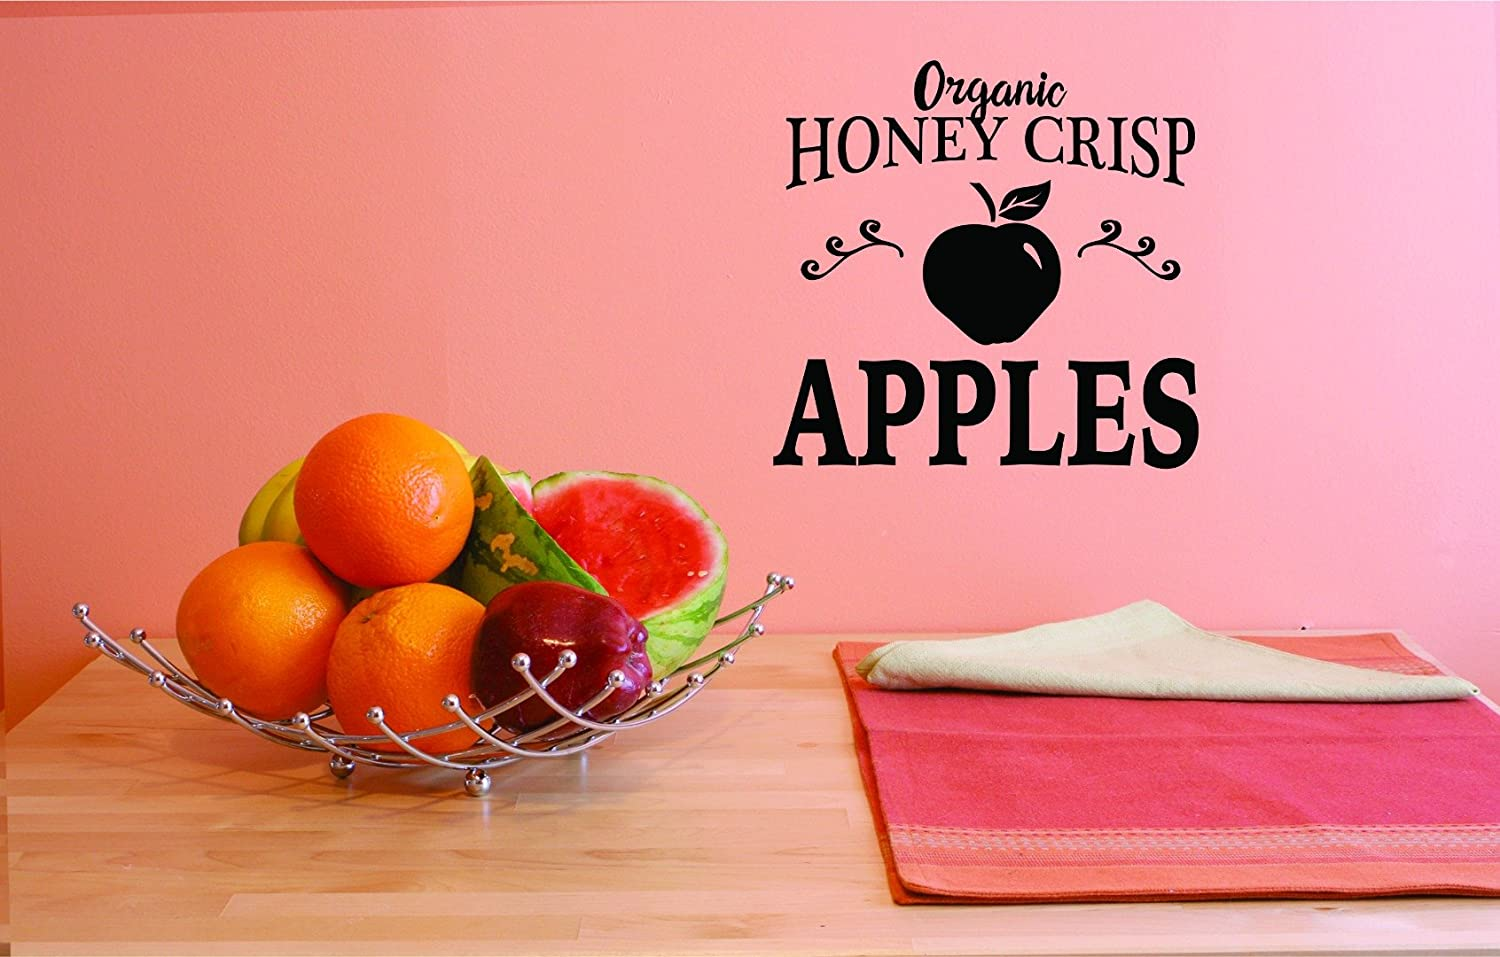 Design with Vinyl JER 1775 3 Hot New Decals Organic Honey Crisp Wall Art Size x 18 Inches Color Black 18 x 18